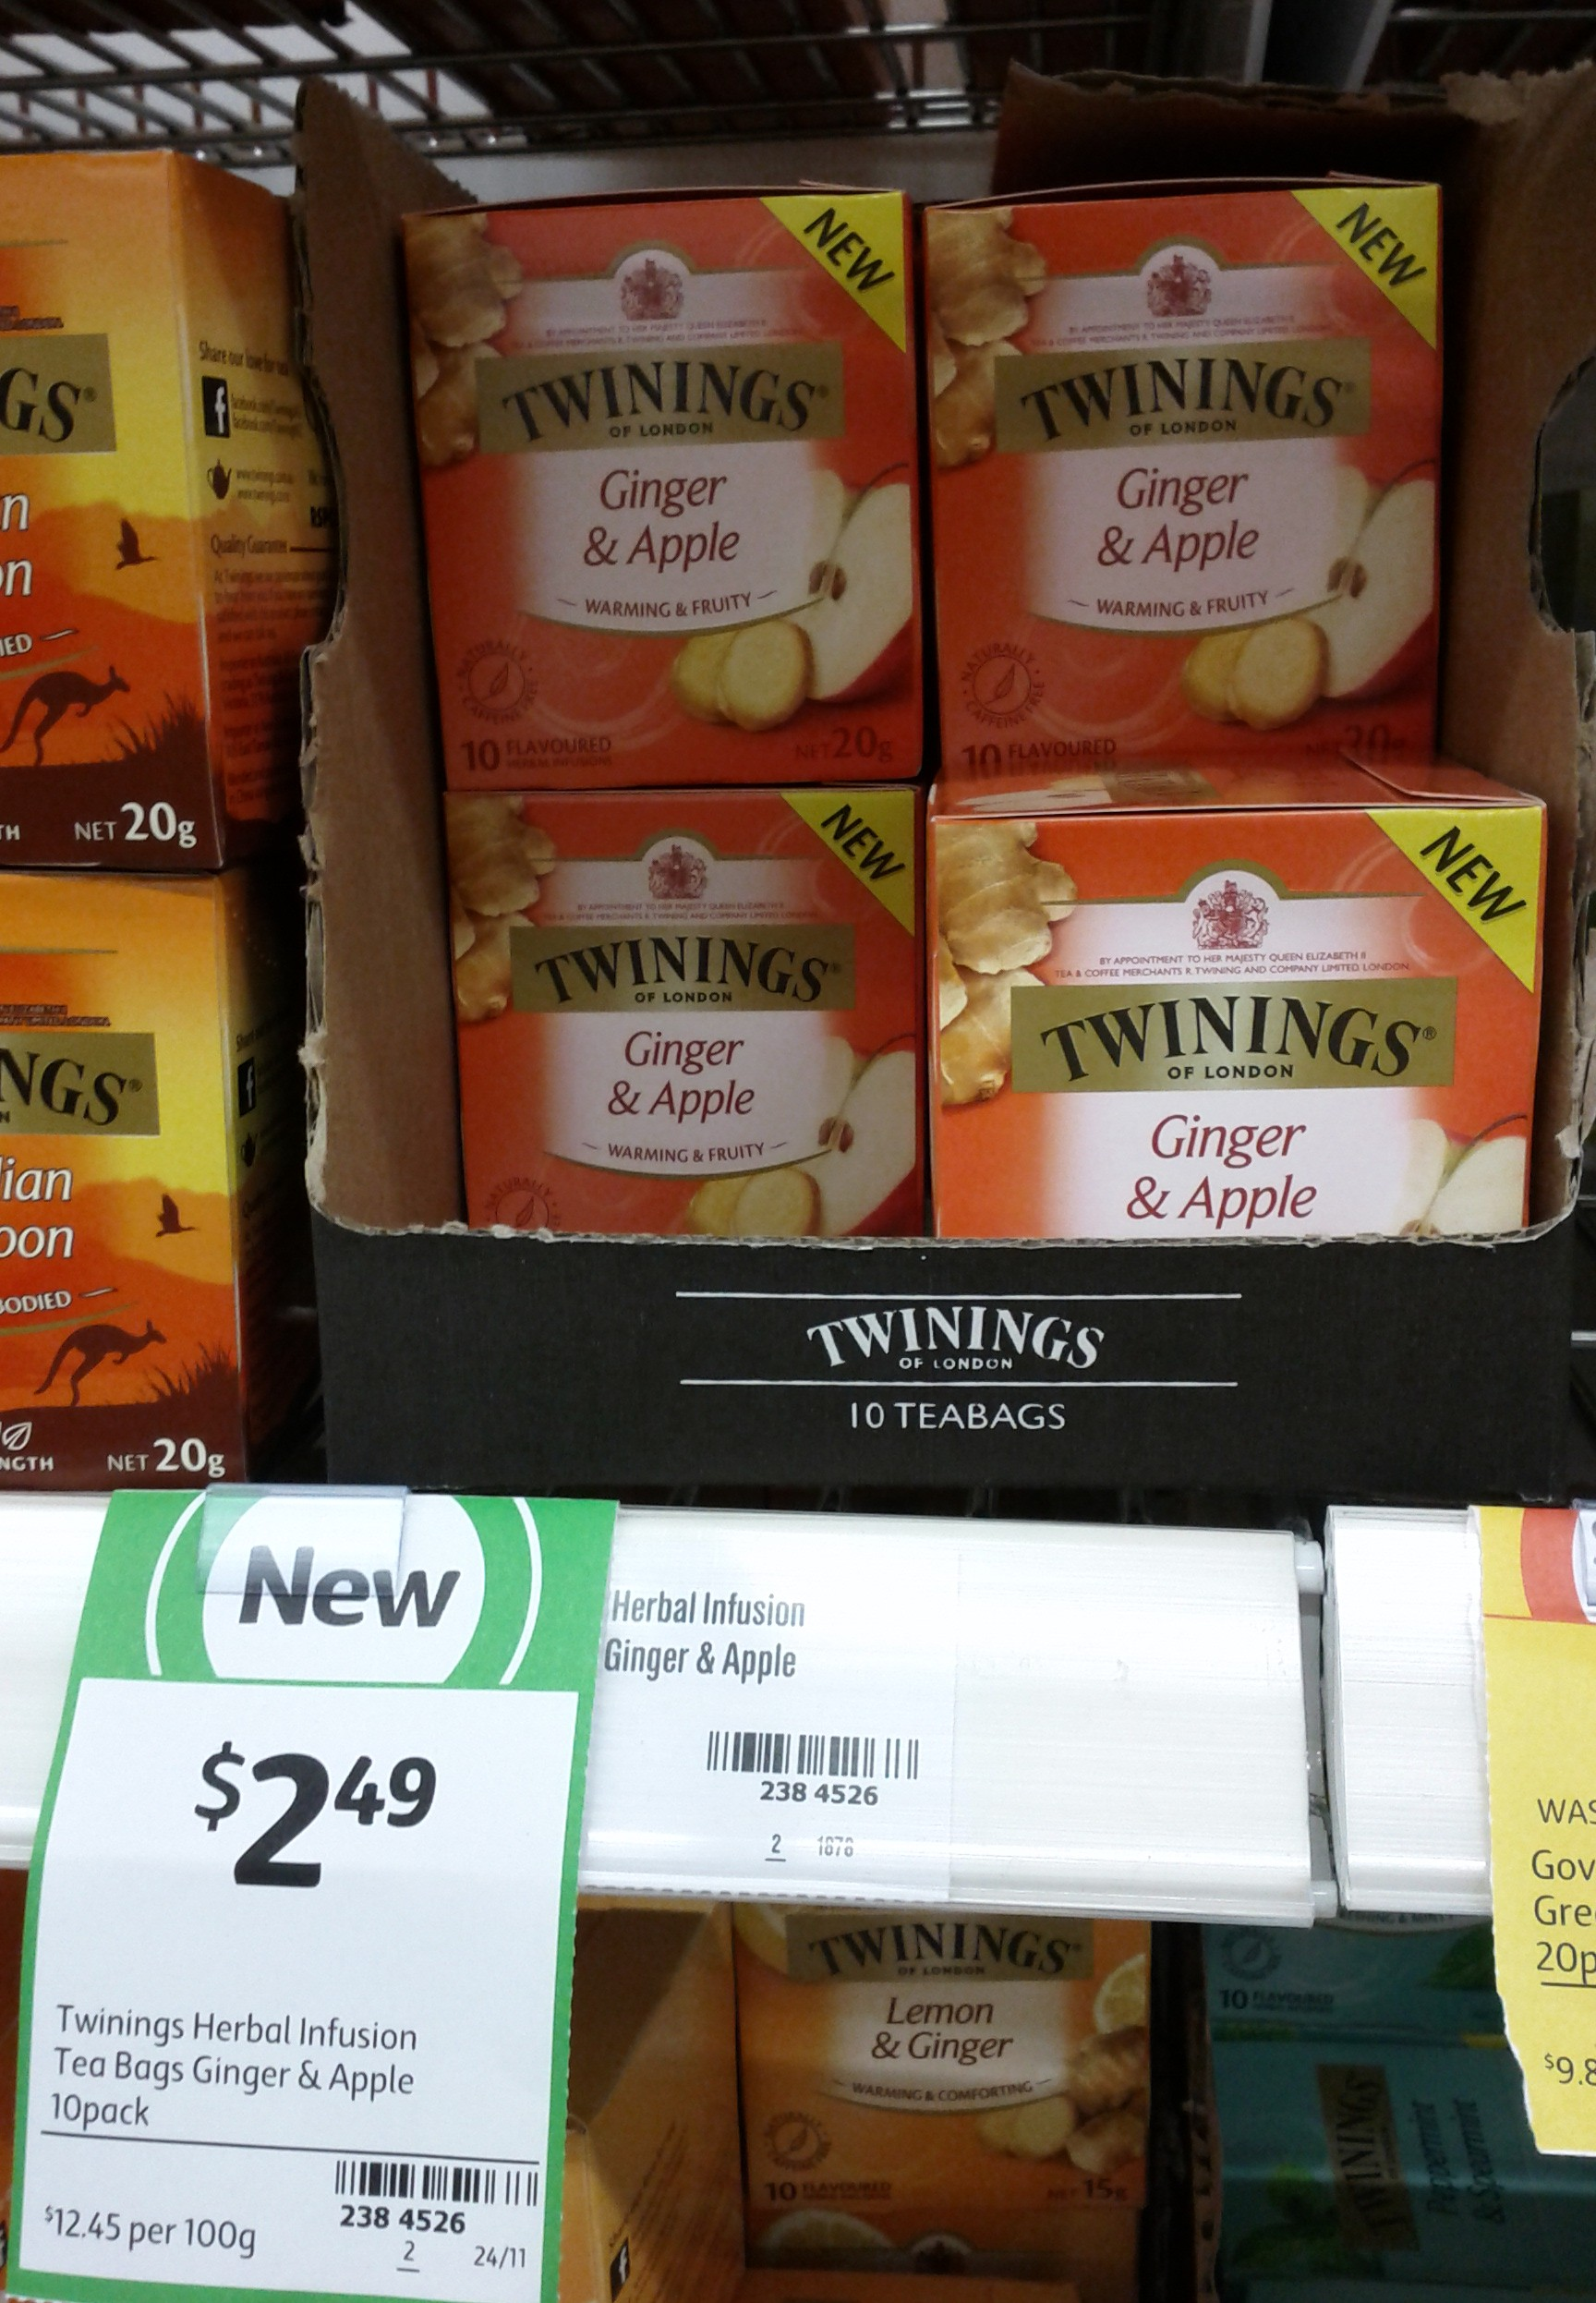 Twinings 20g Ginger & Apple Tea